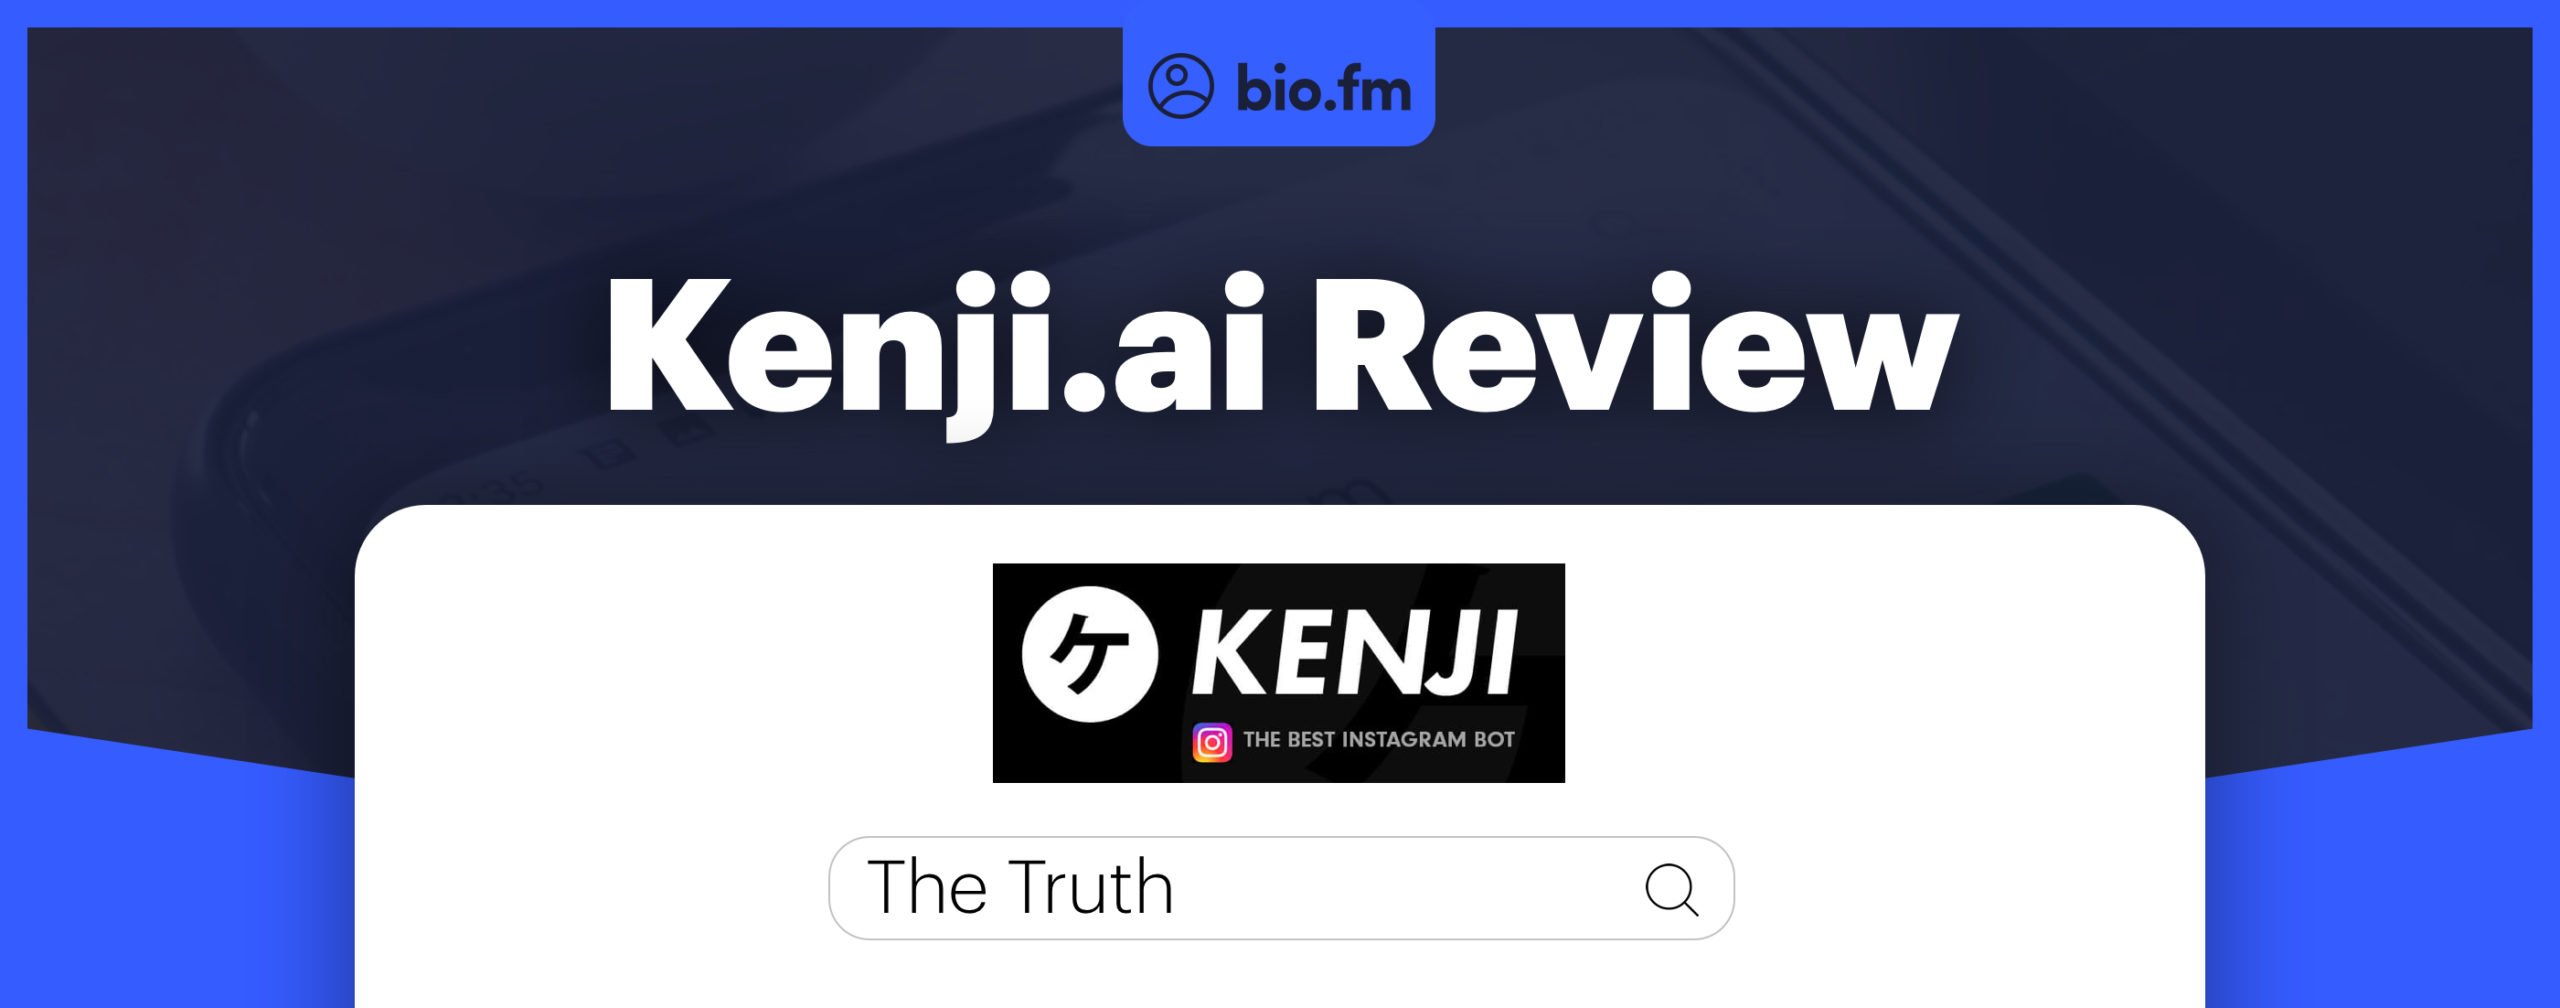 kenji review featured image